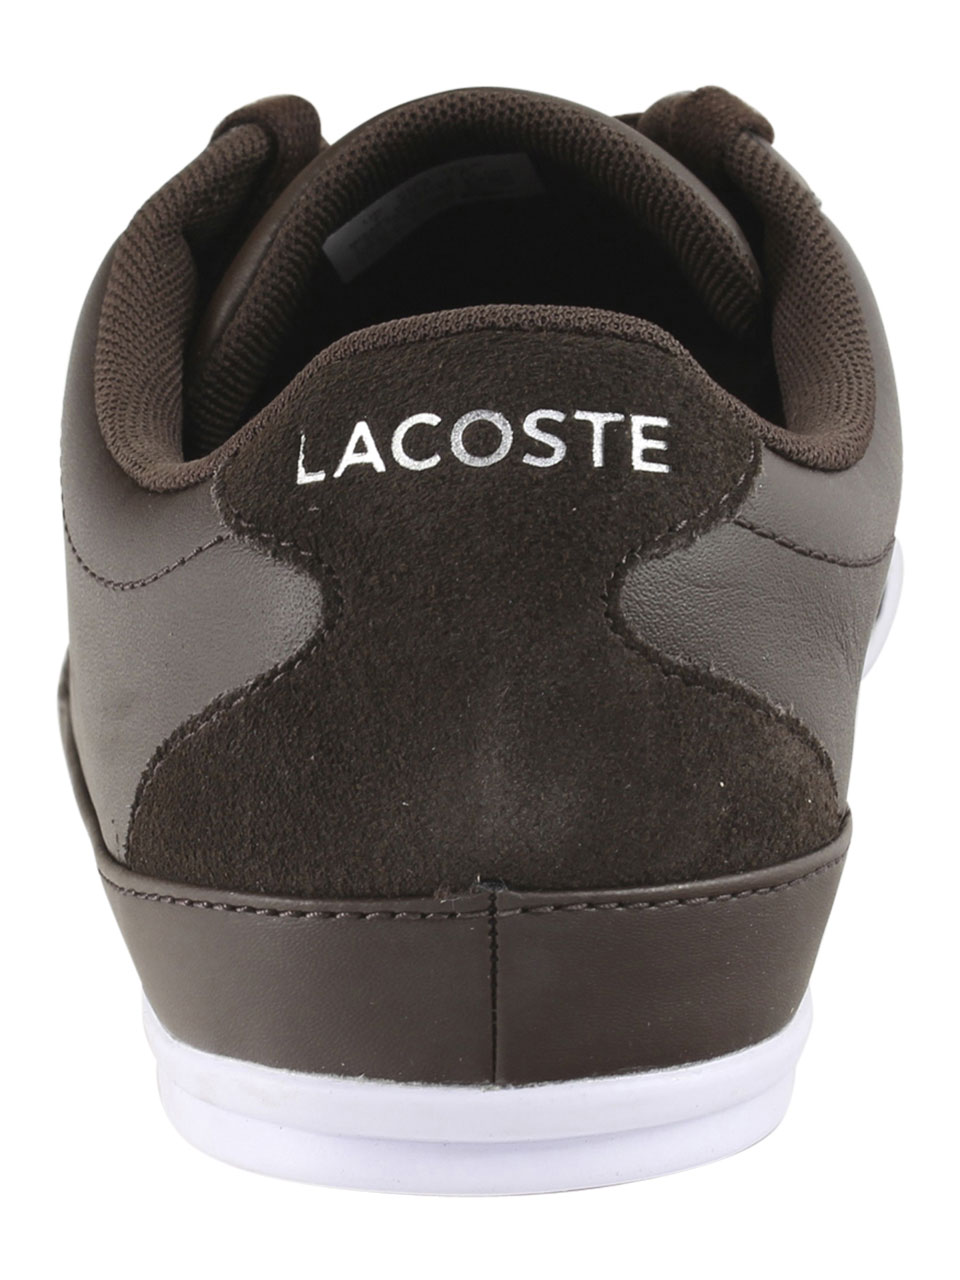 Lacoste-Men-039-s-Misano-Sport-118-Sneakers-Shoes thumbnail 18